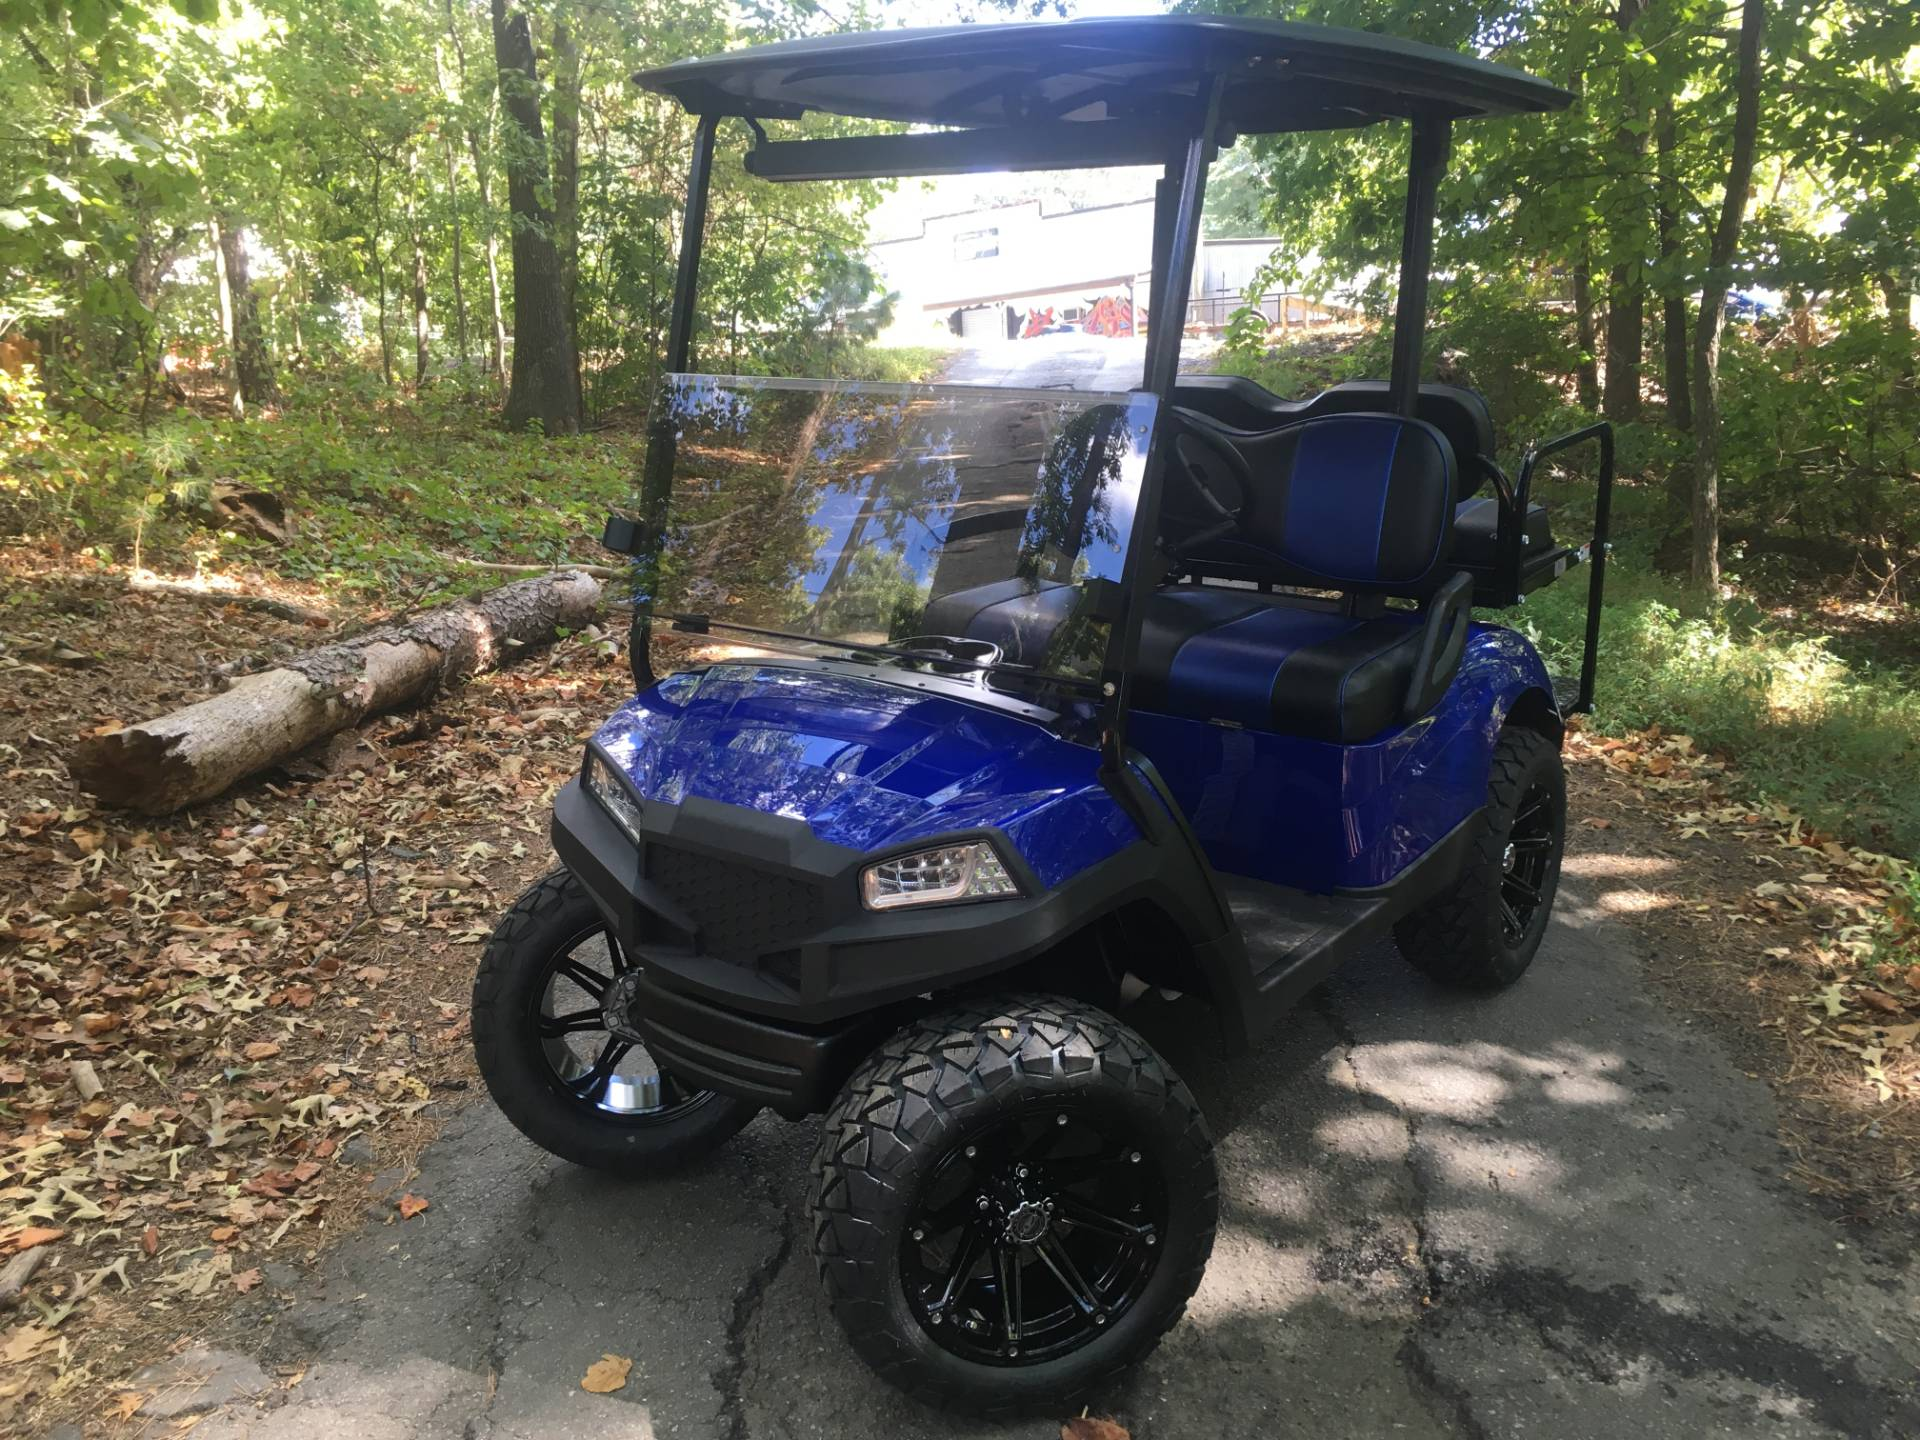 2016 YAMAHA DRIVE G-29 in Woodstock, Georgia - Photo 1